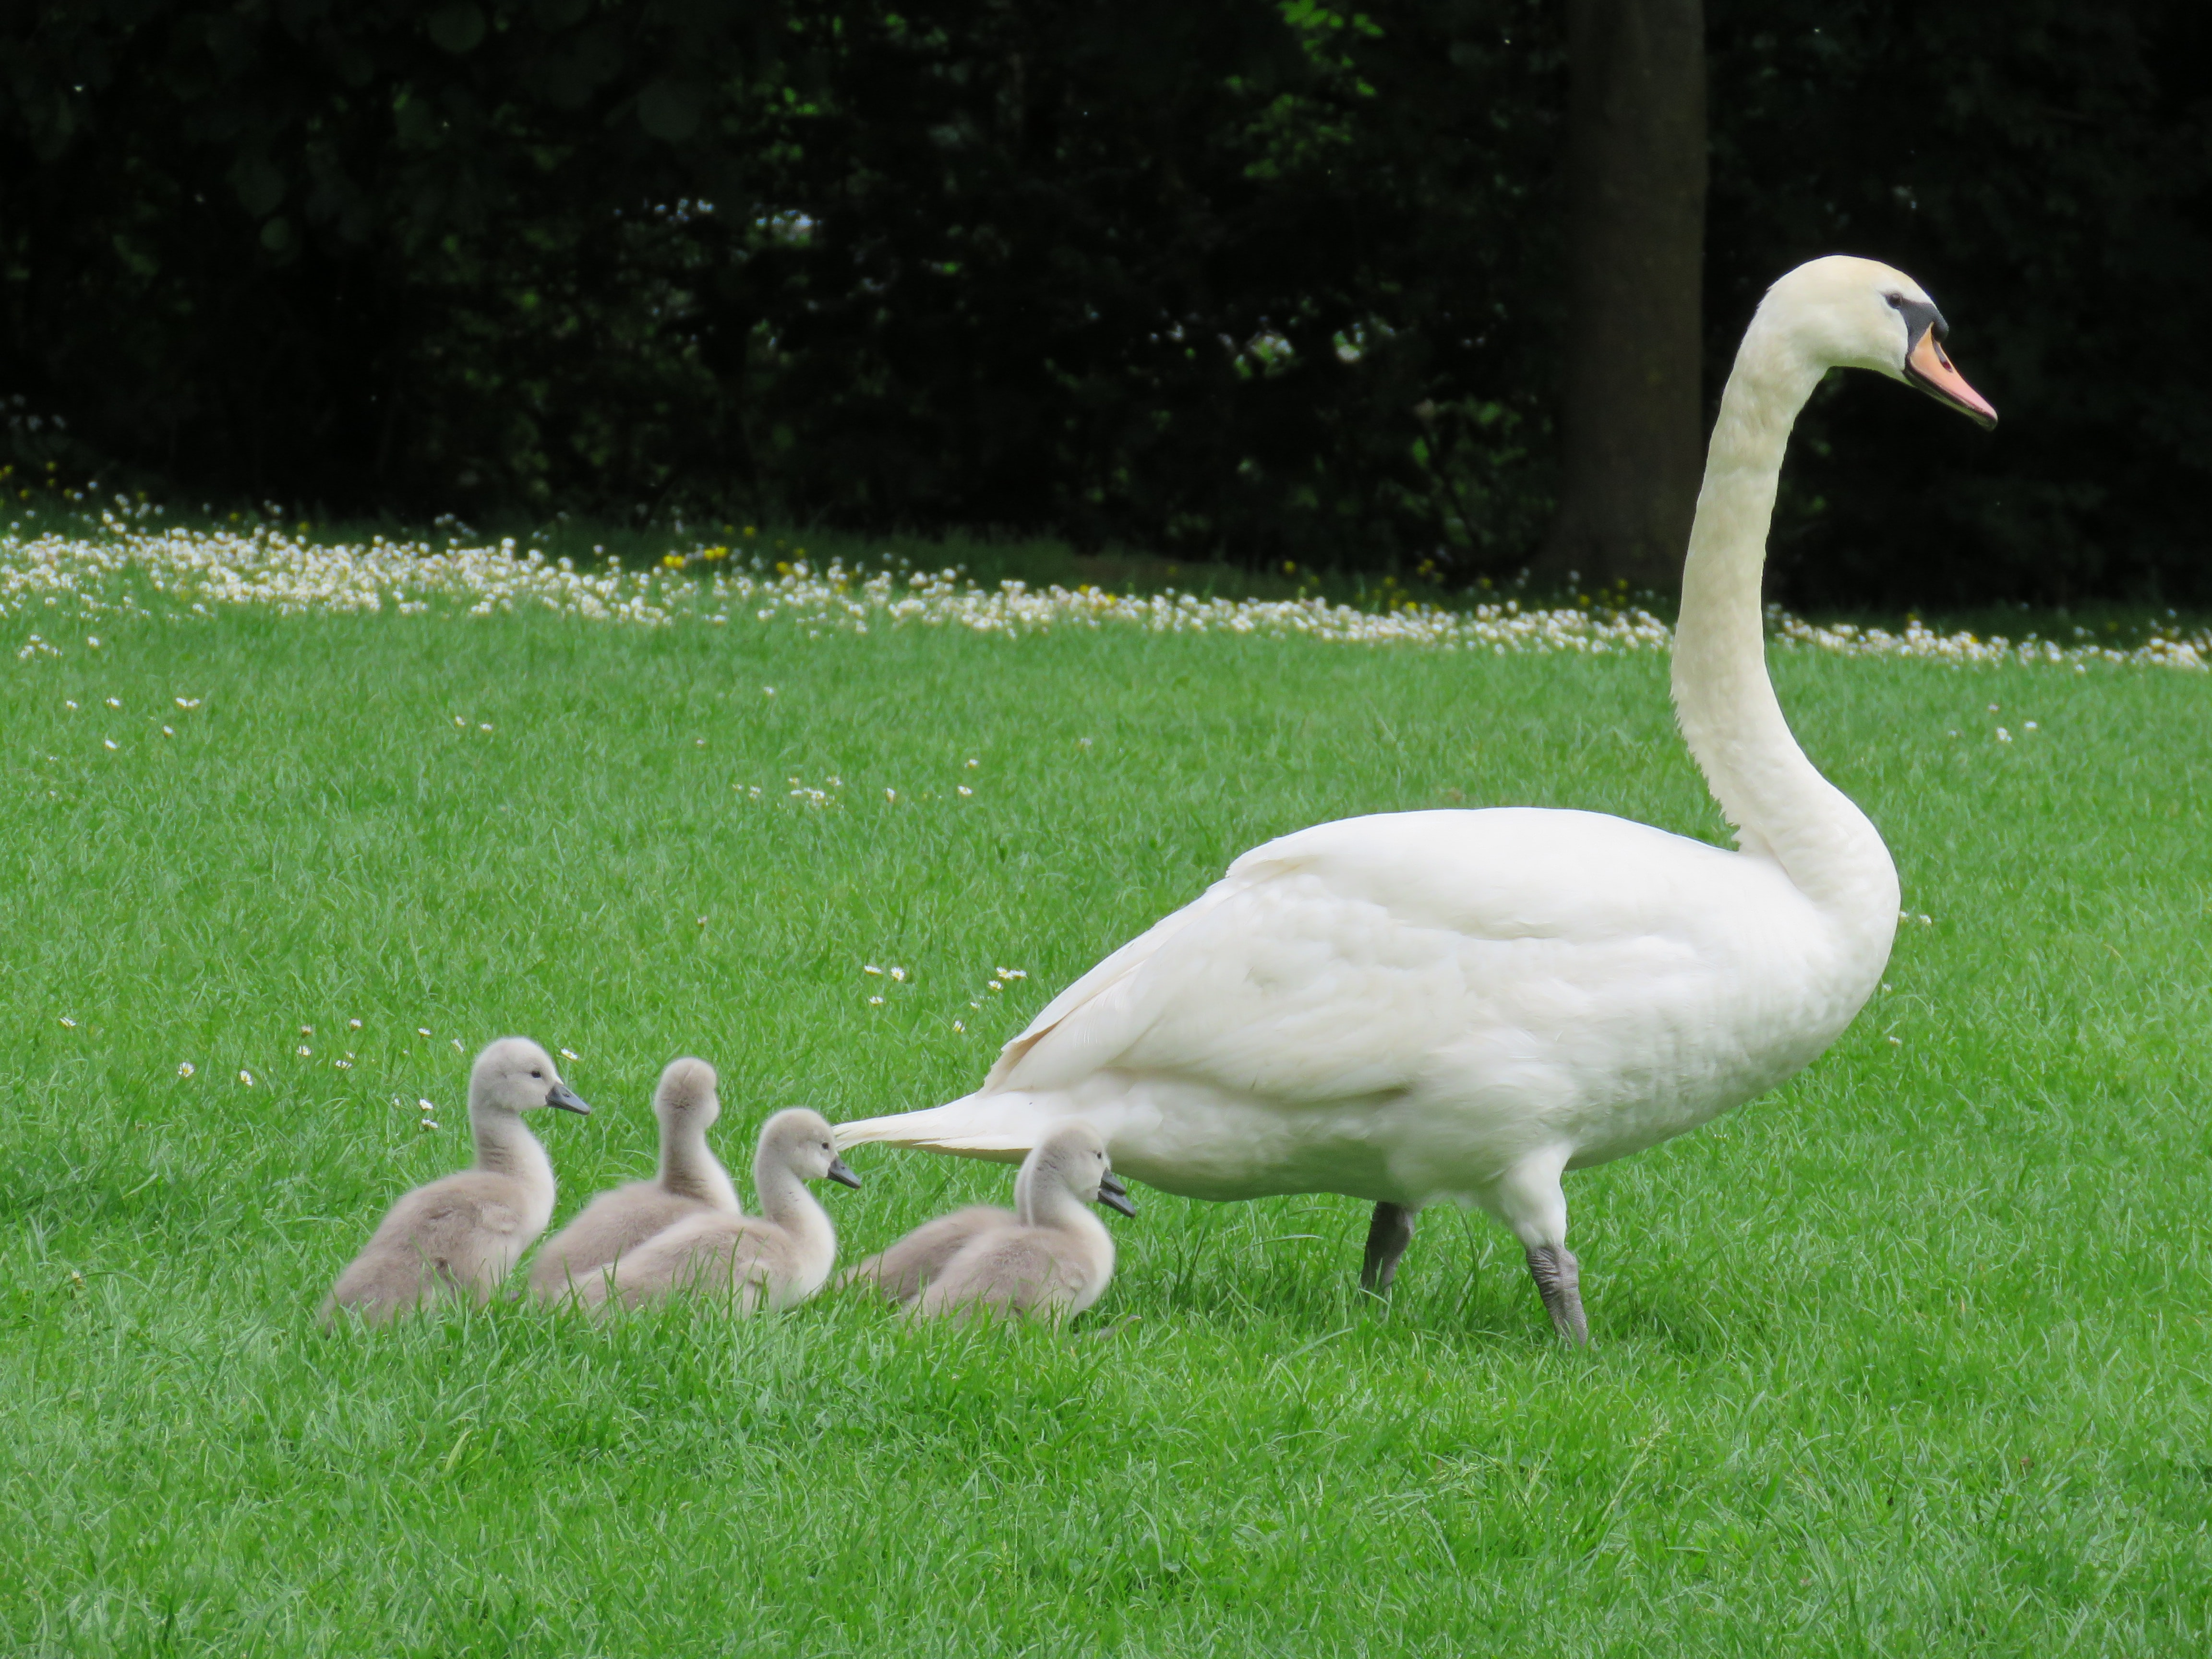 Downy swan babies follow their mother through the grass